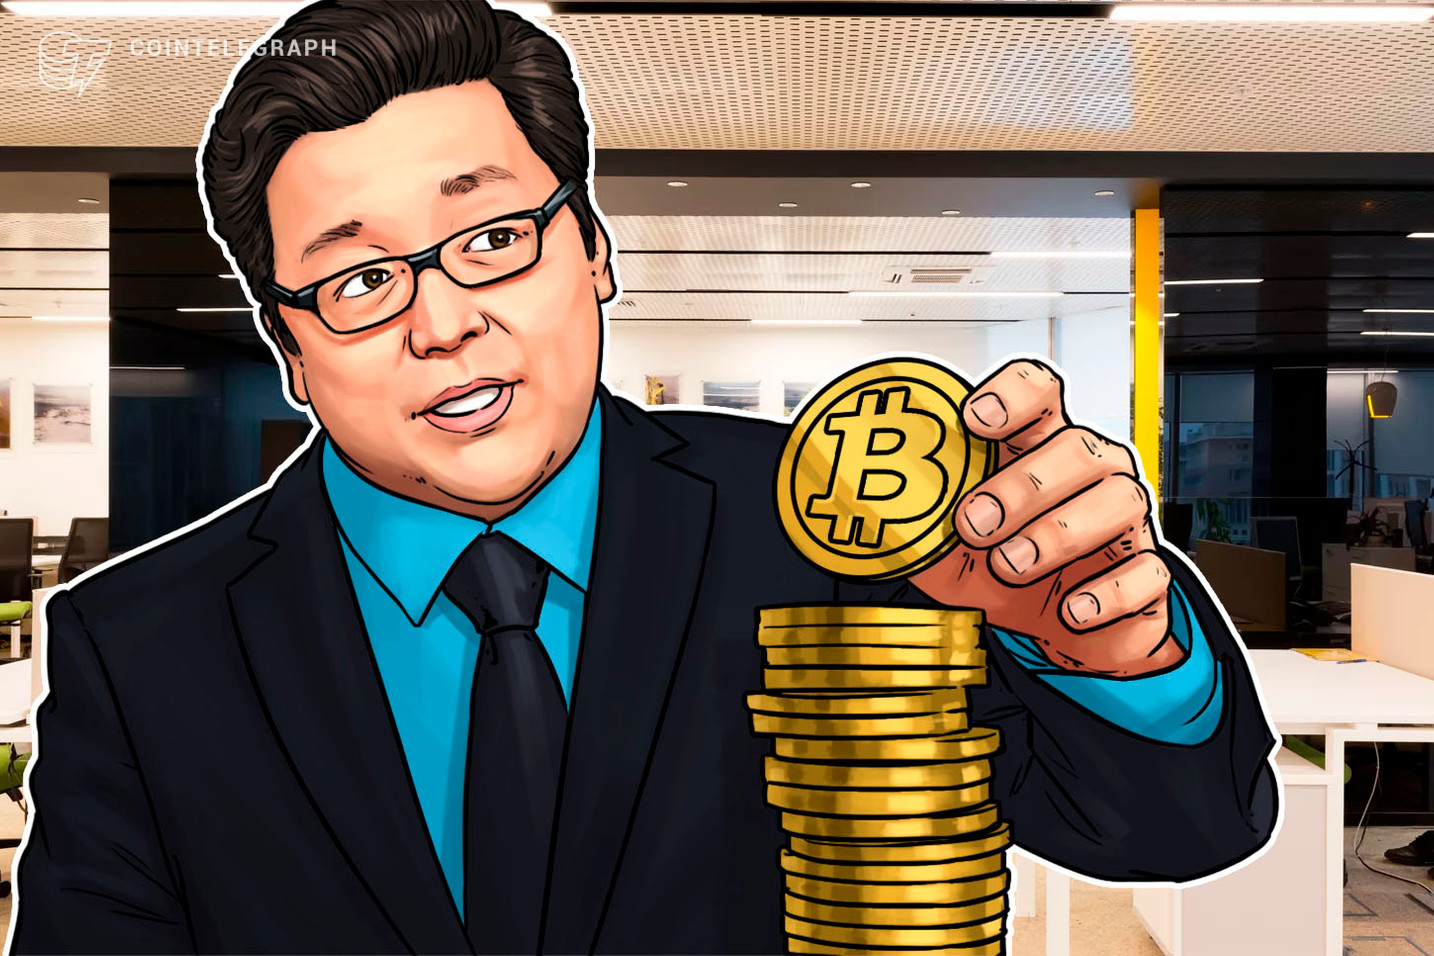 Tom Lee de Fundstrat dice que valor justo de Bitcoin alcanzará $150K por moneda